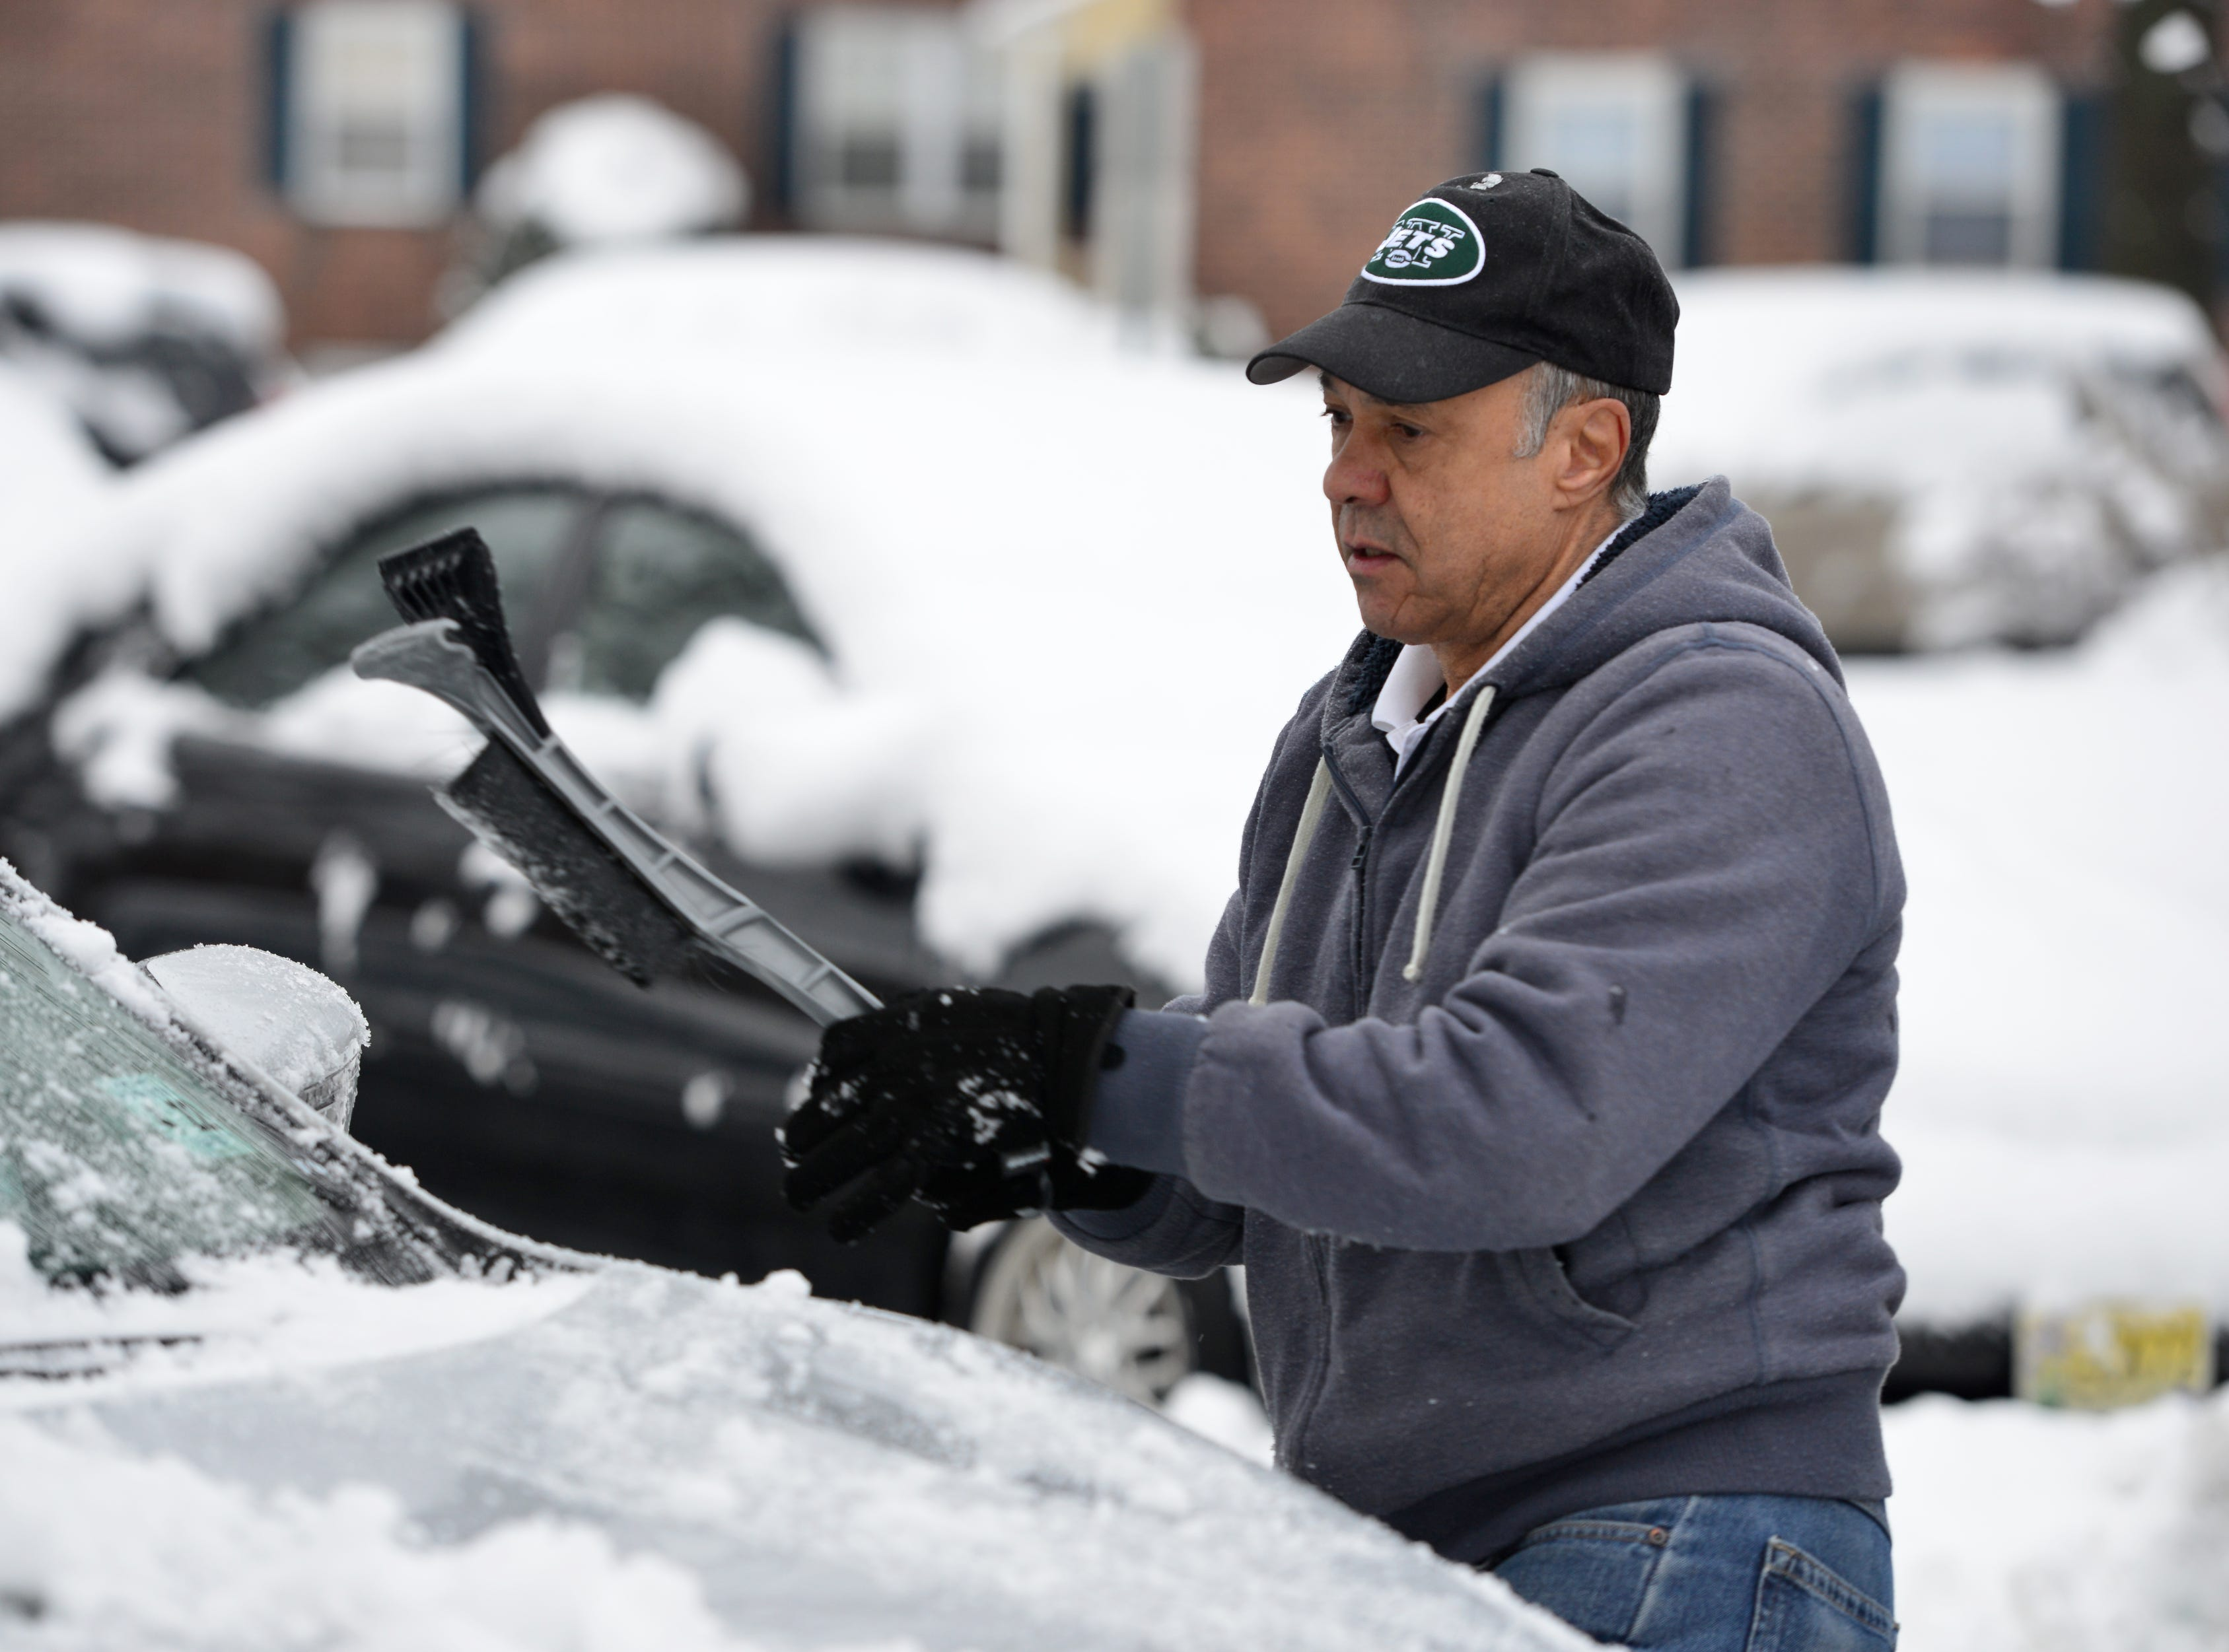 Francisco Paulino, of North Arlington, clears his car from snow in front of his home in North Arlington on Monday morning March 4, 2019.